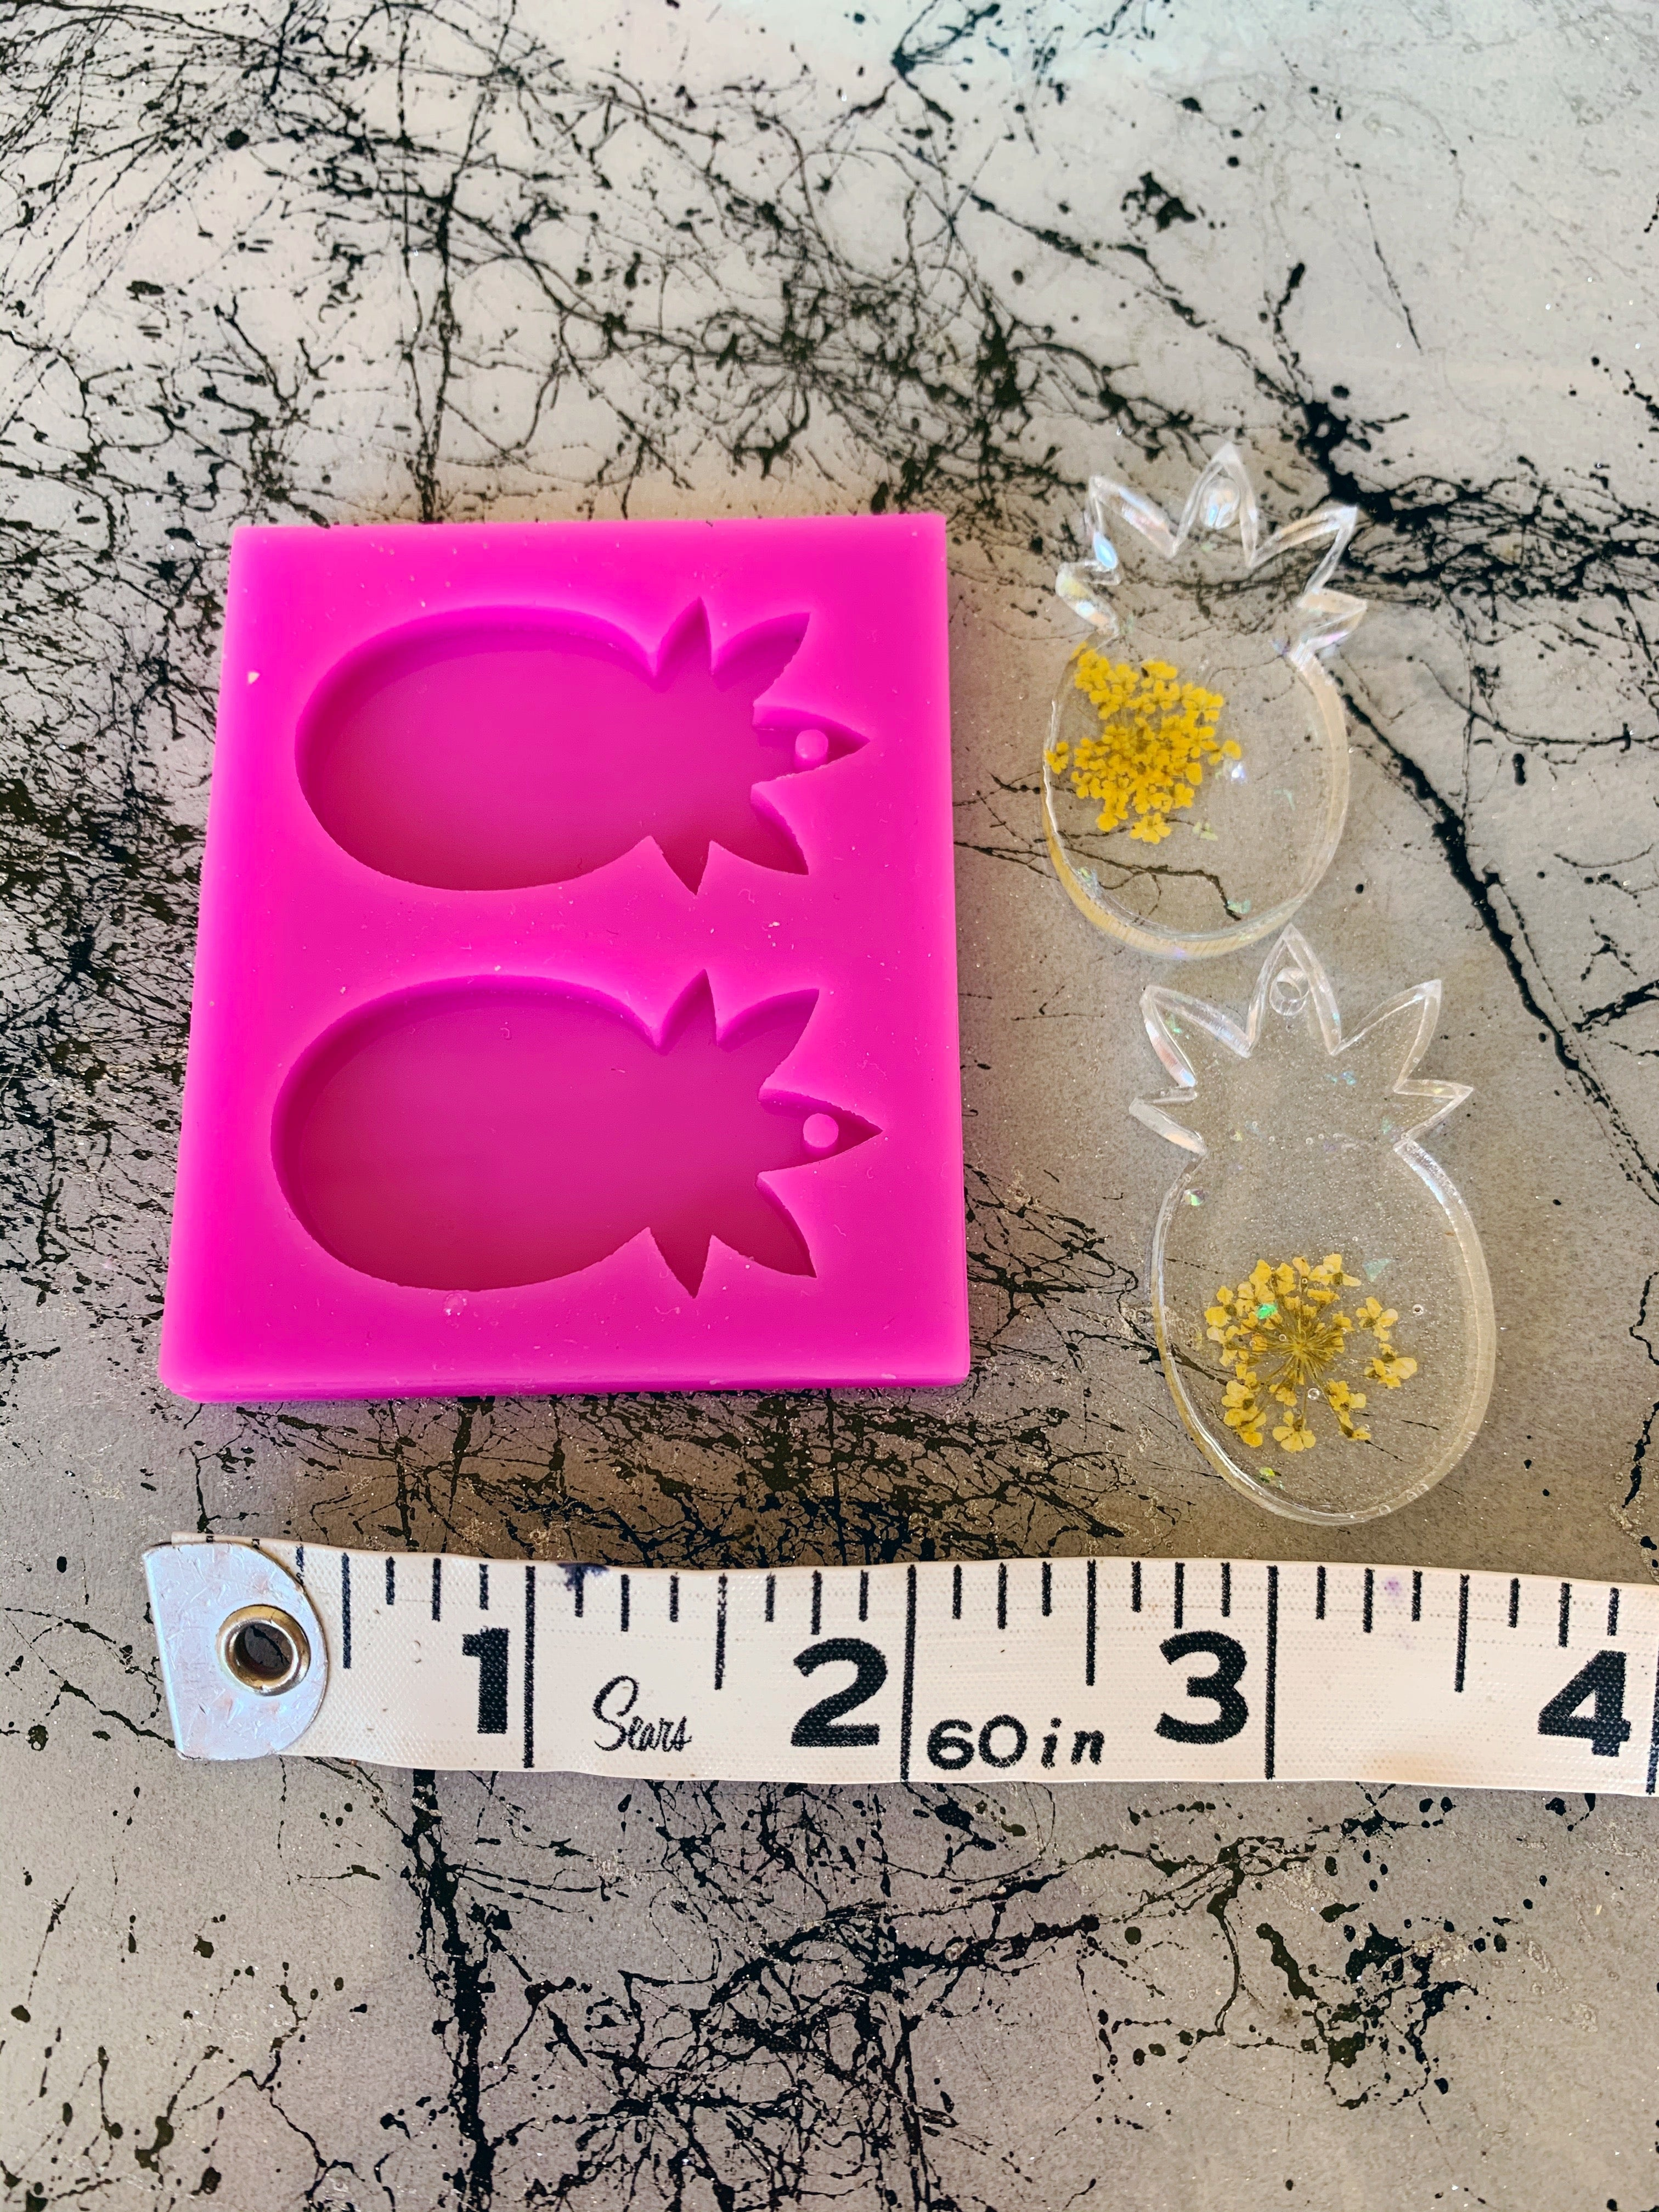 pineapple resin silicone earring mold craft